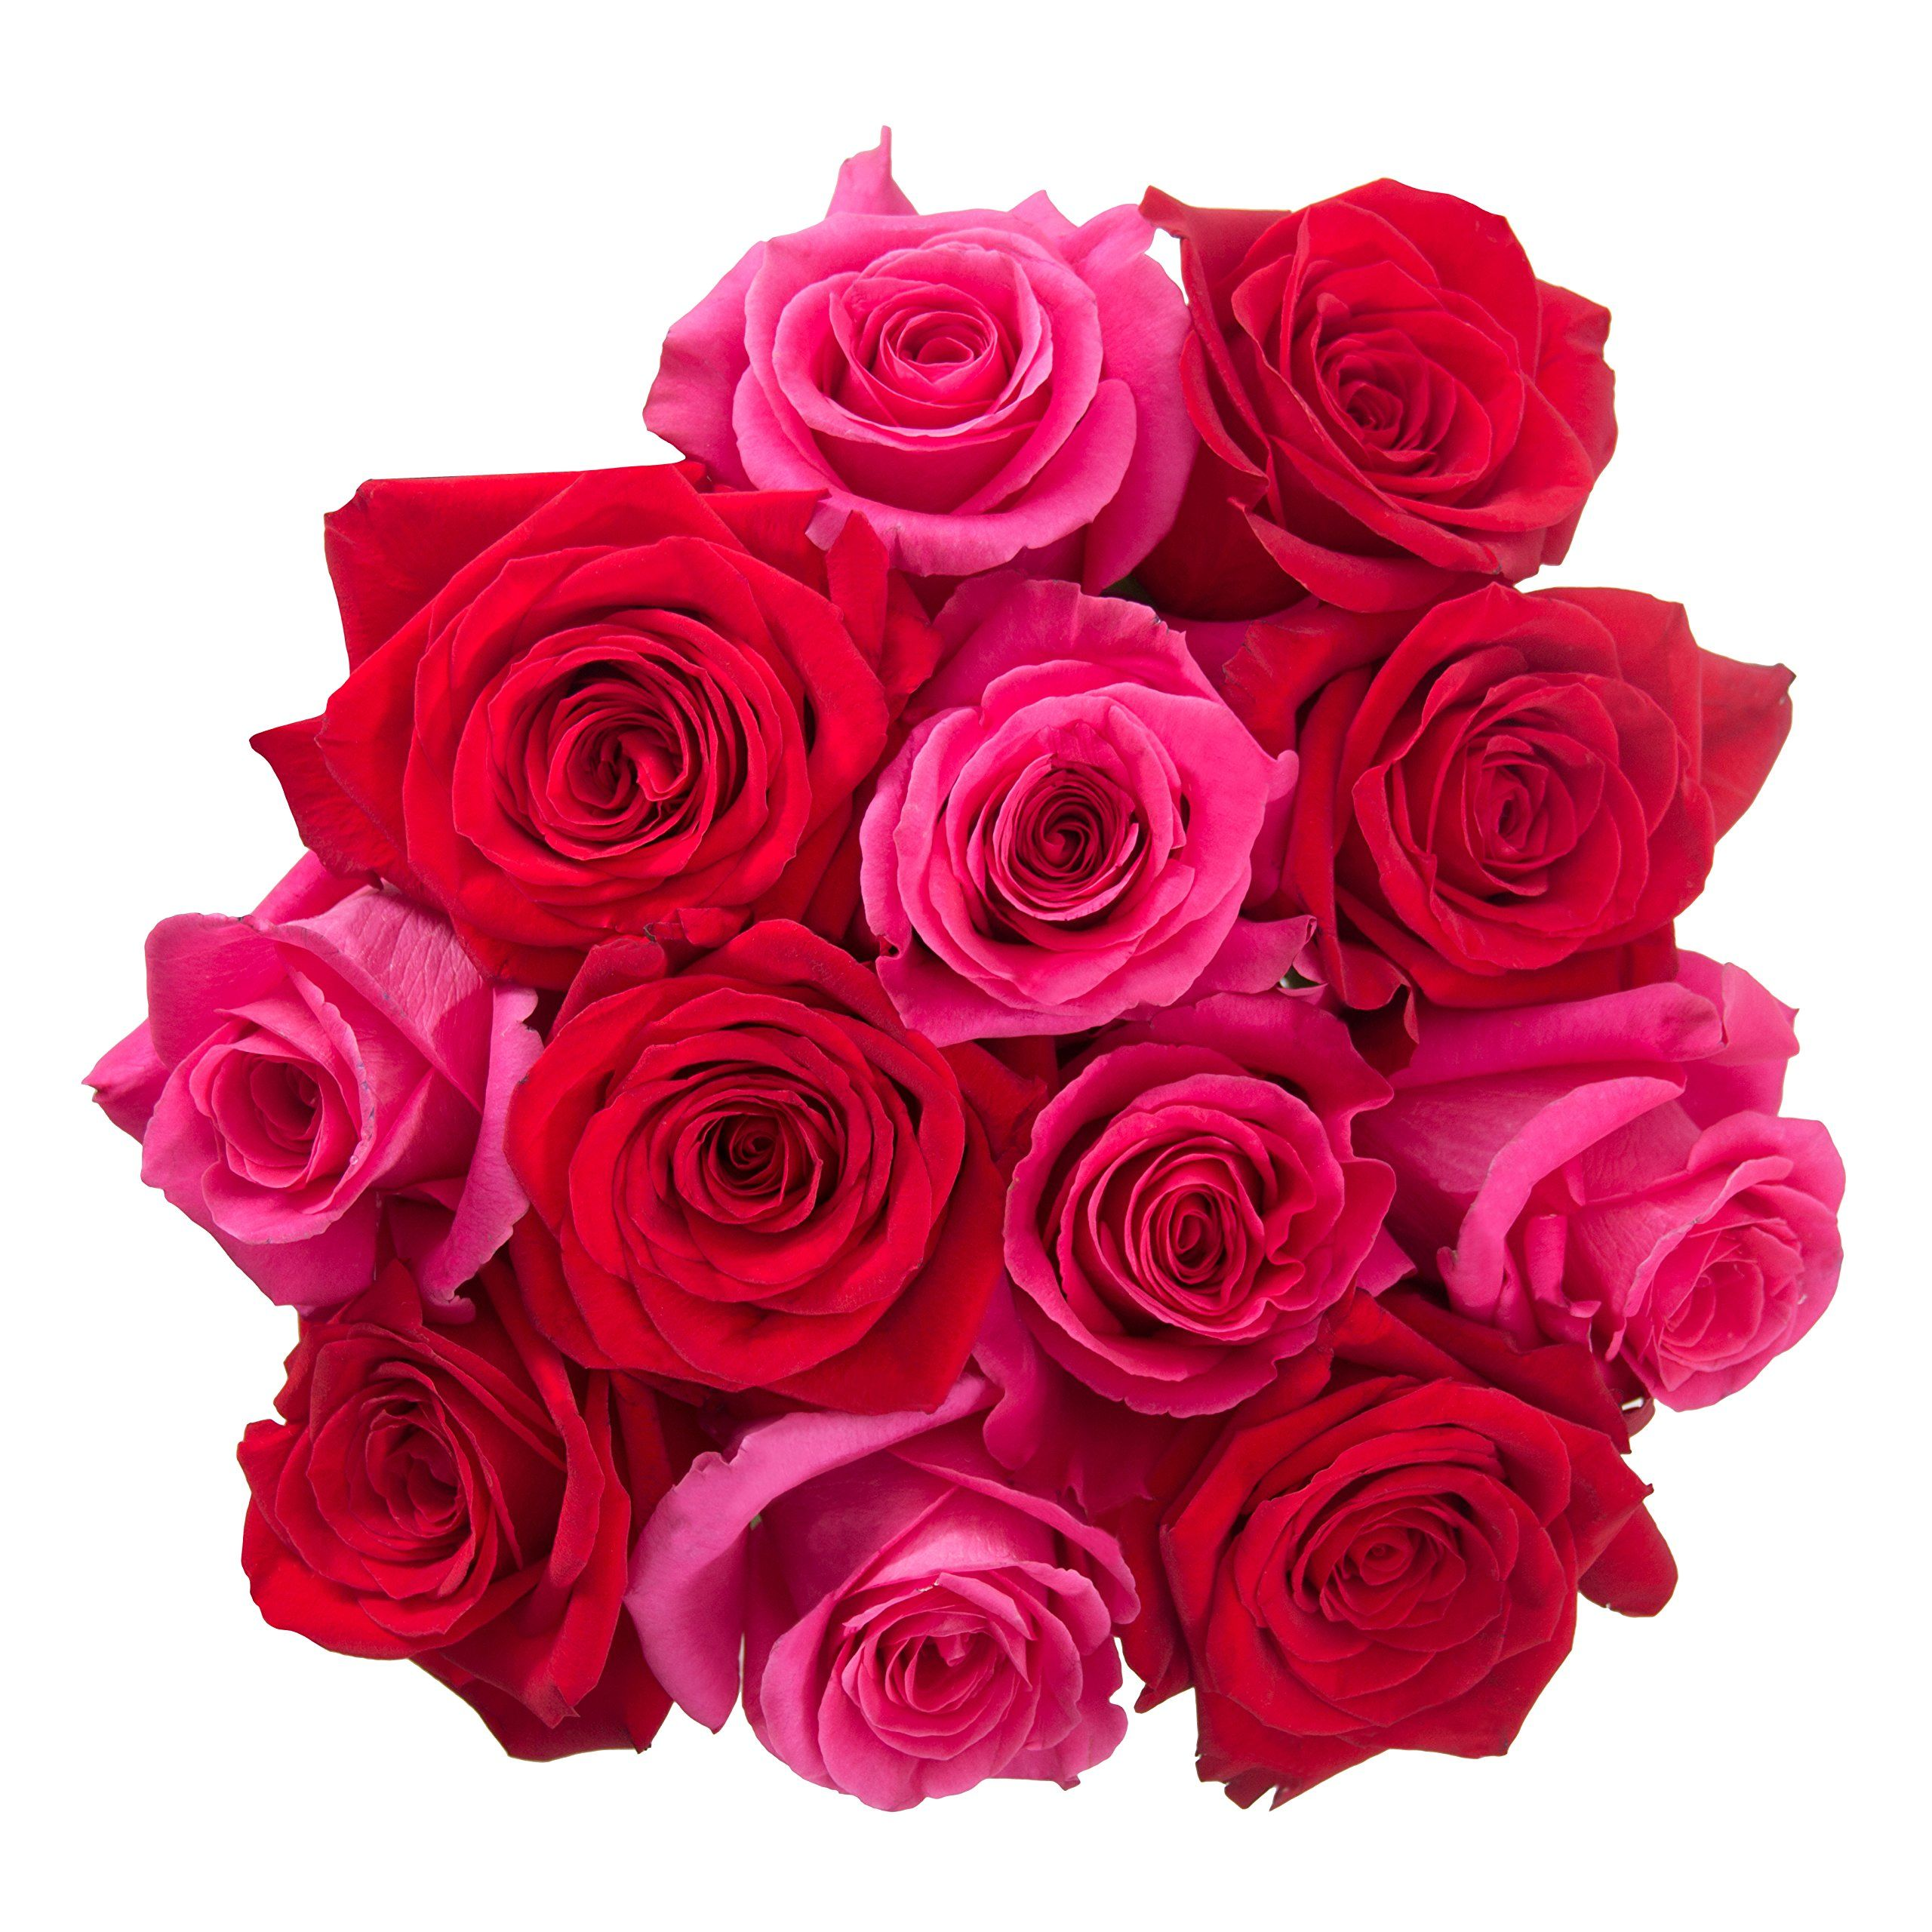 Flowers for delivery on amazon picker upper bouquet 12 fresh roses flowers for delivery on amazon picker upper bouquet 12 fresh roses redhot pink delivered with free flower food packet long stem roses guaranteed best izmirmasajfo